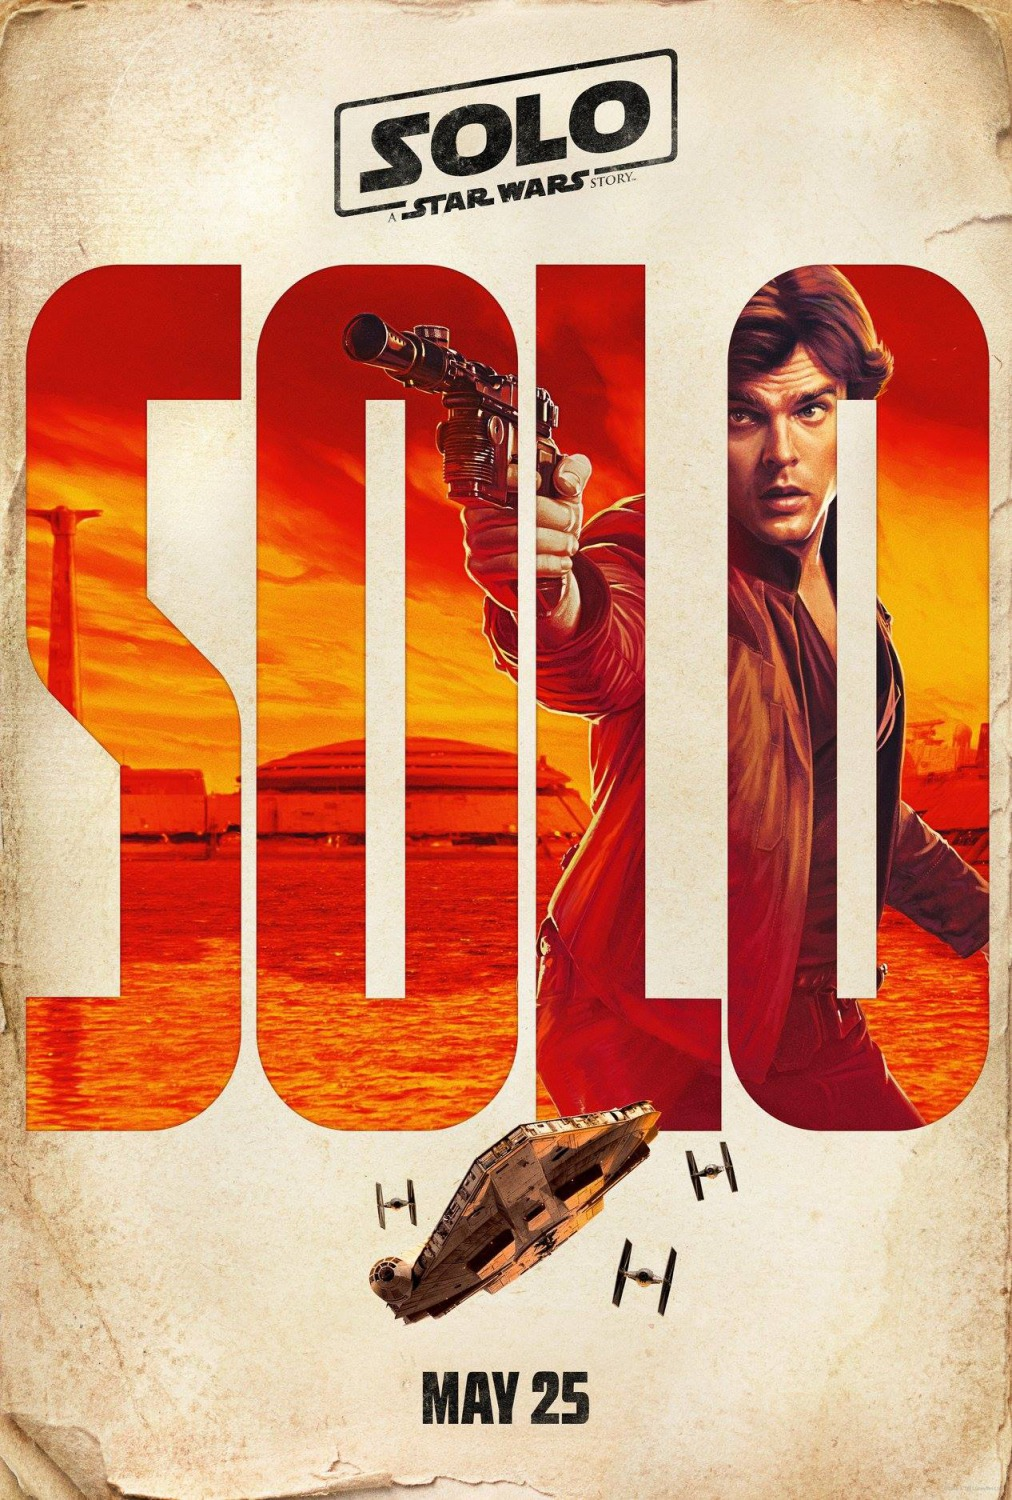 Solo-A-Star-Wars-Story-To-Premiere-At-Cannes-Film-Festival